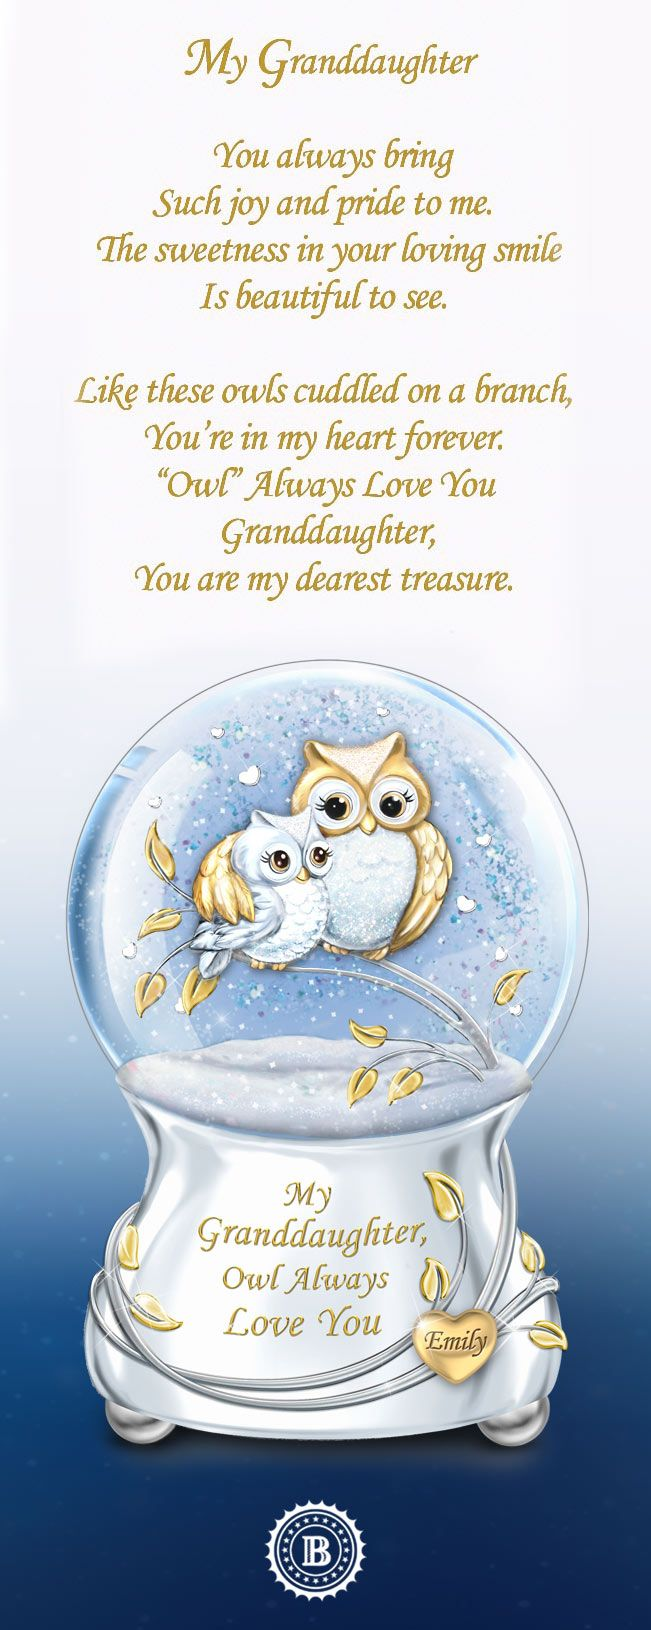 Cuddle For You Cuddle Box With Glass Teddy Gift For Granddaughter Inscription